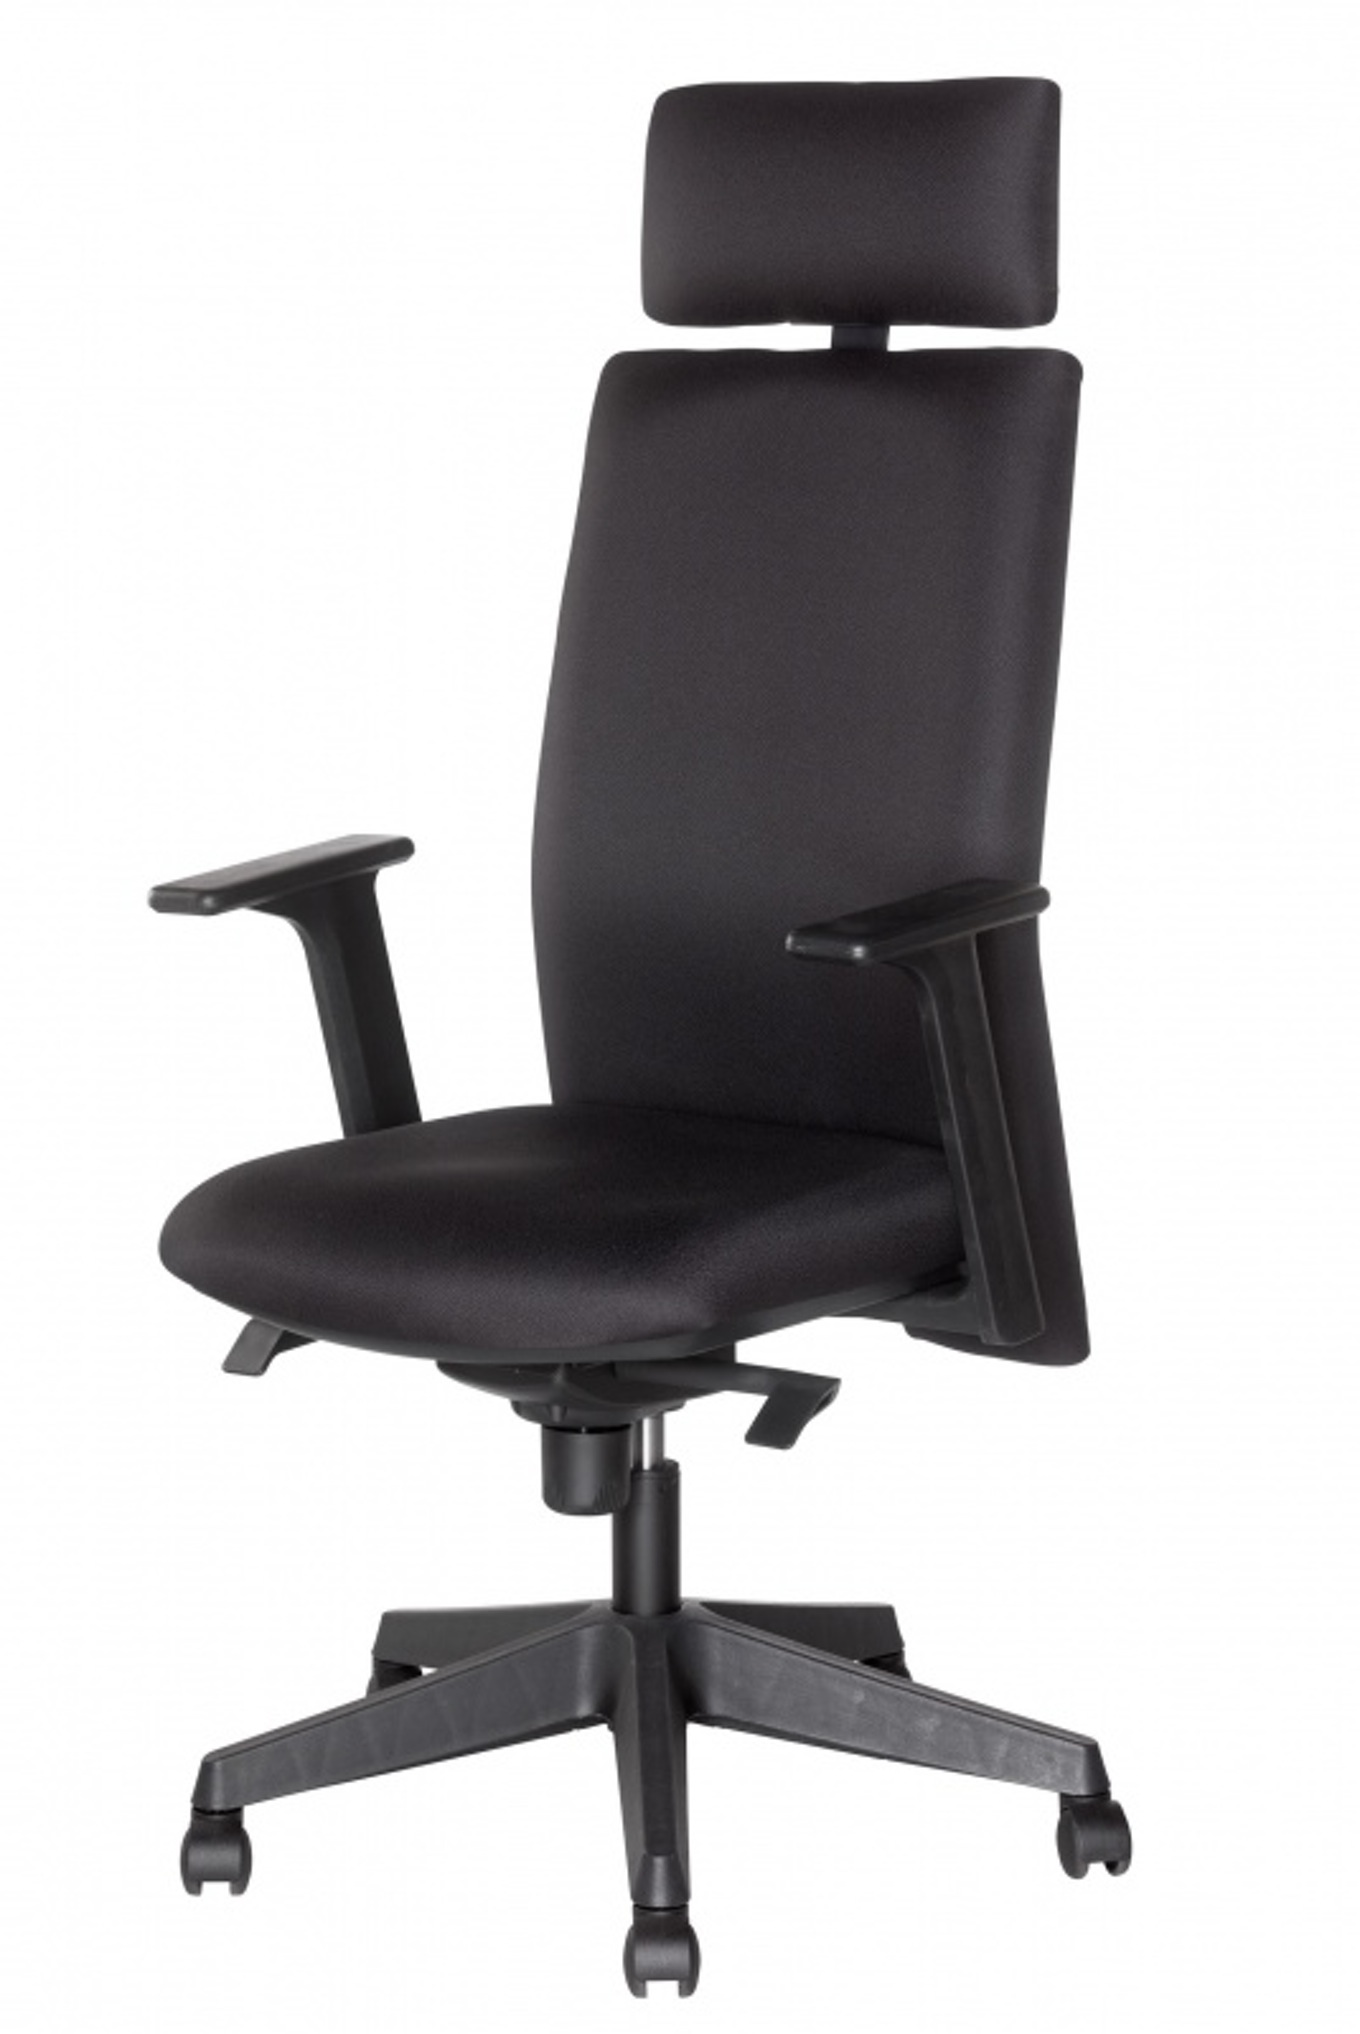 fauteuil de bureau confortable pour le dos 28 images chaise de bureau racing confortable. Black Bedroom Furniture Sets. Home Design Ideas